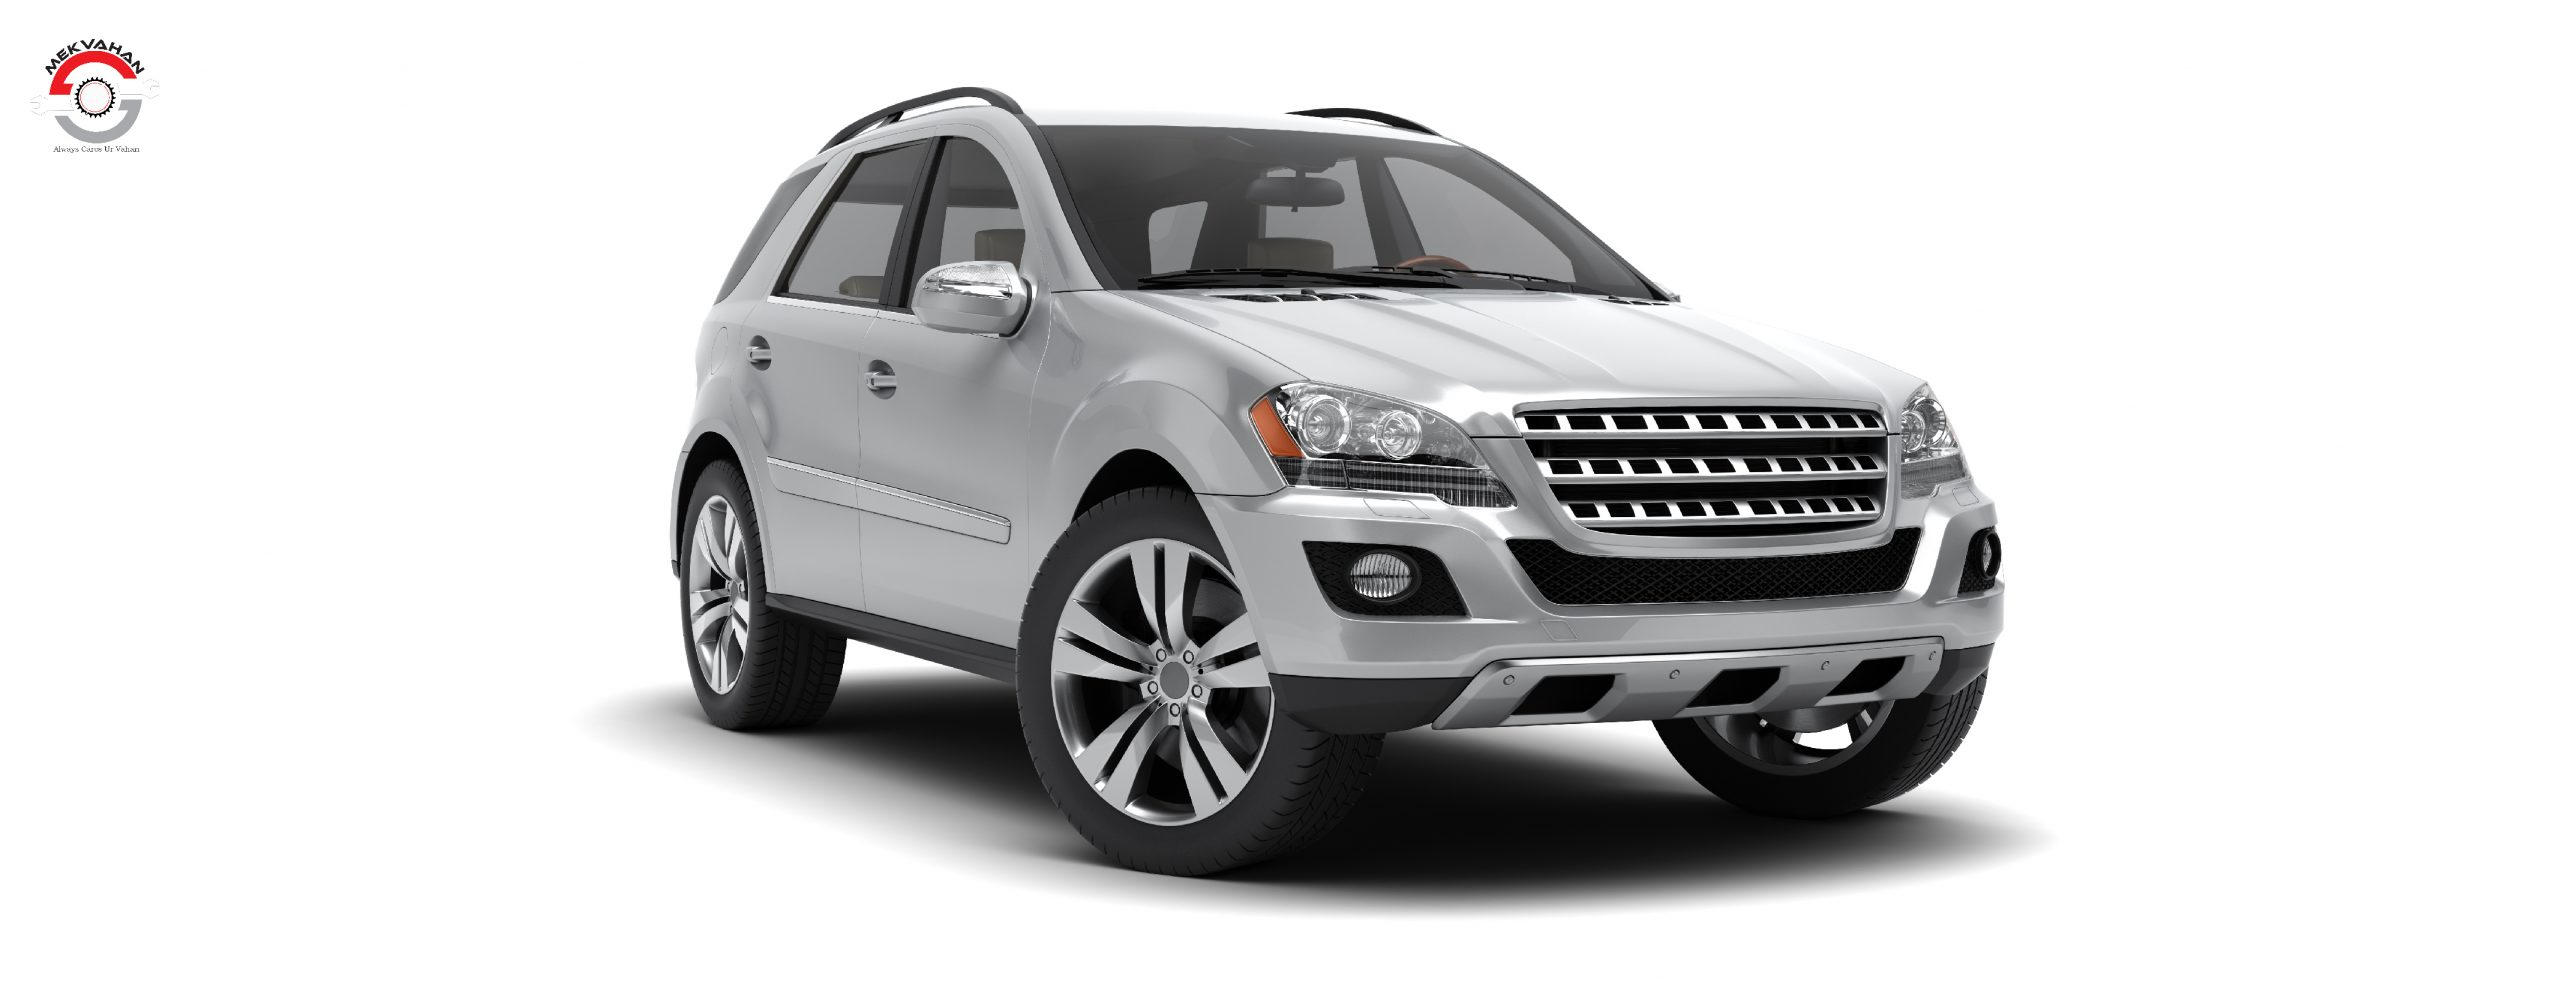 Best selling SUV in India 2021